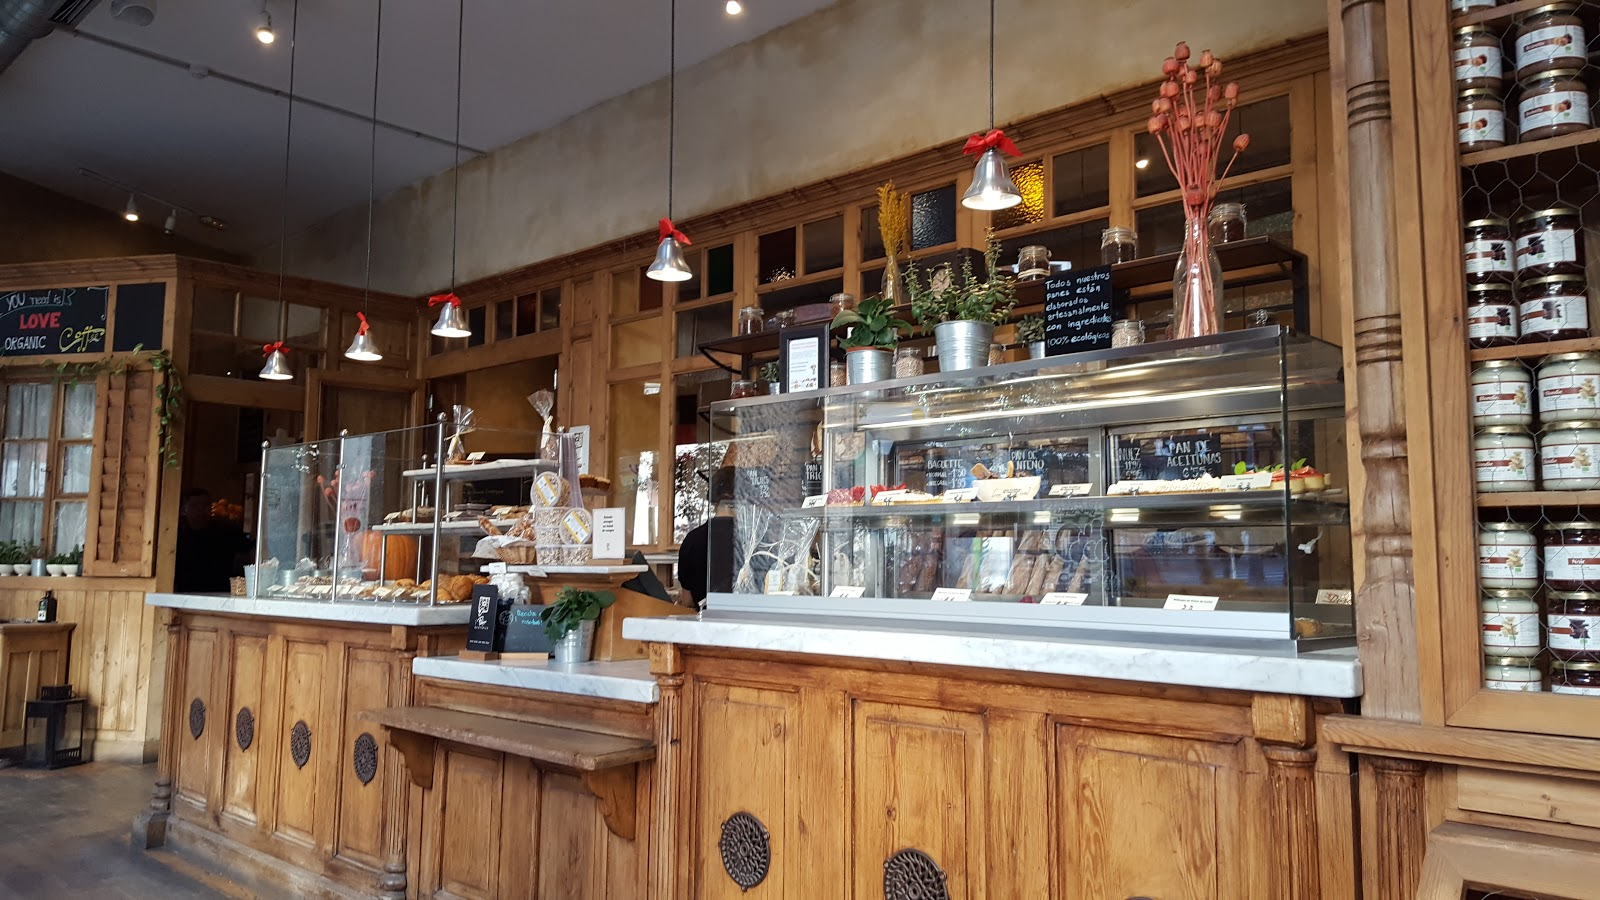 Le Pain Quotidien Fuencarral: A Work-Friendly Place in Madrid